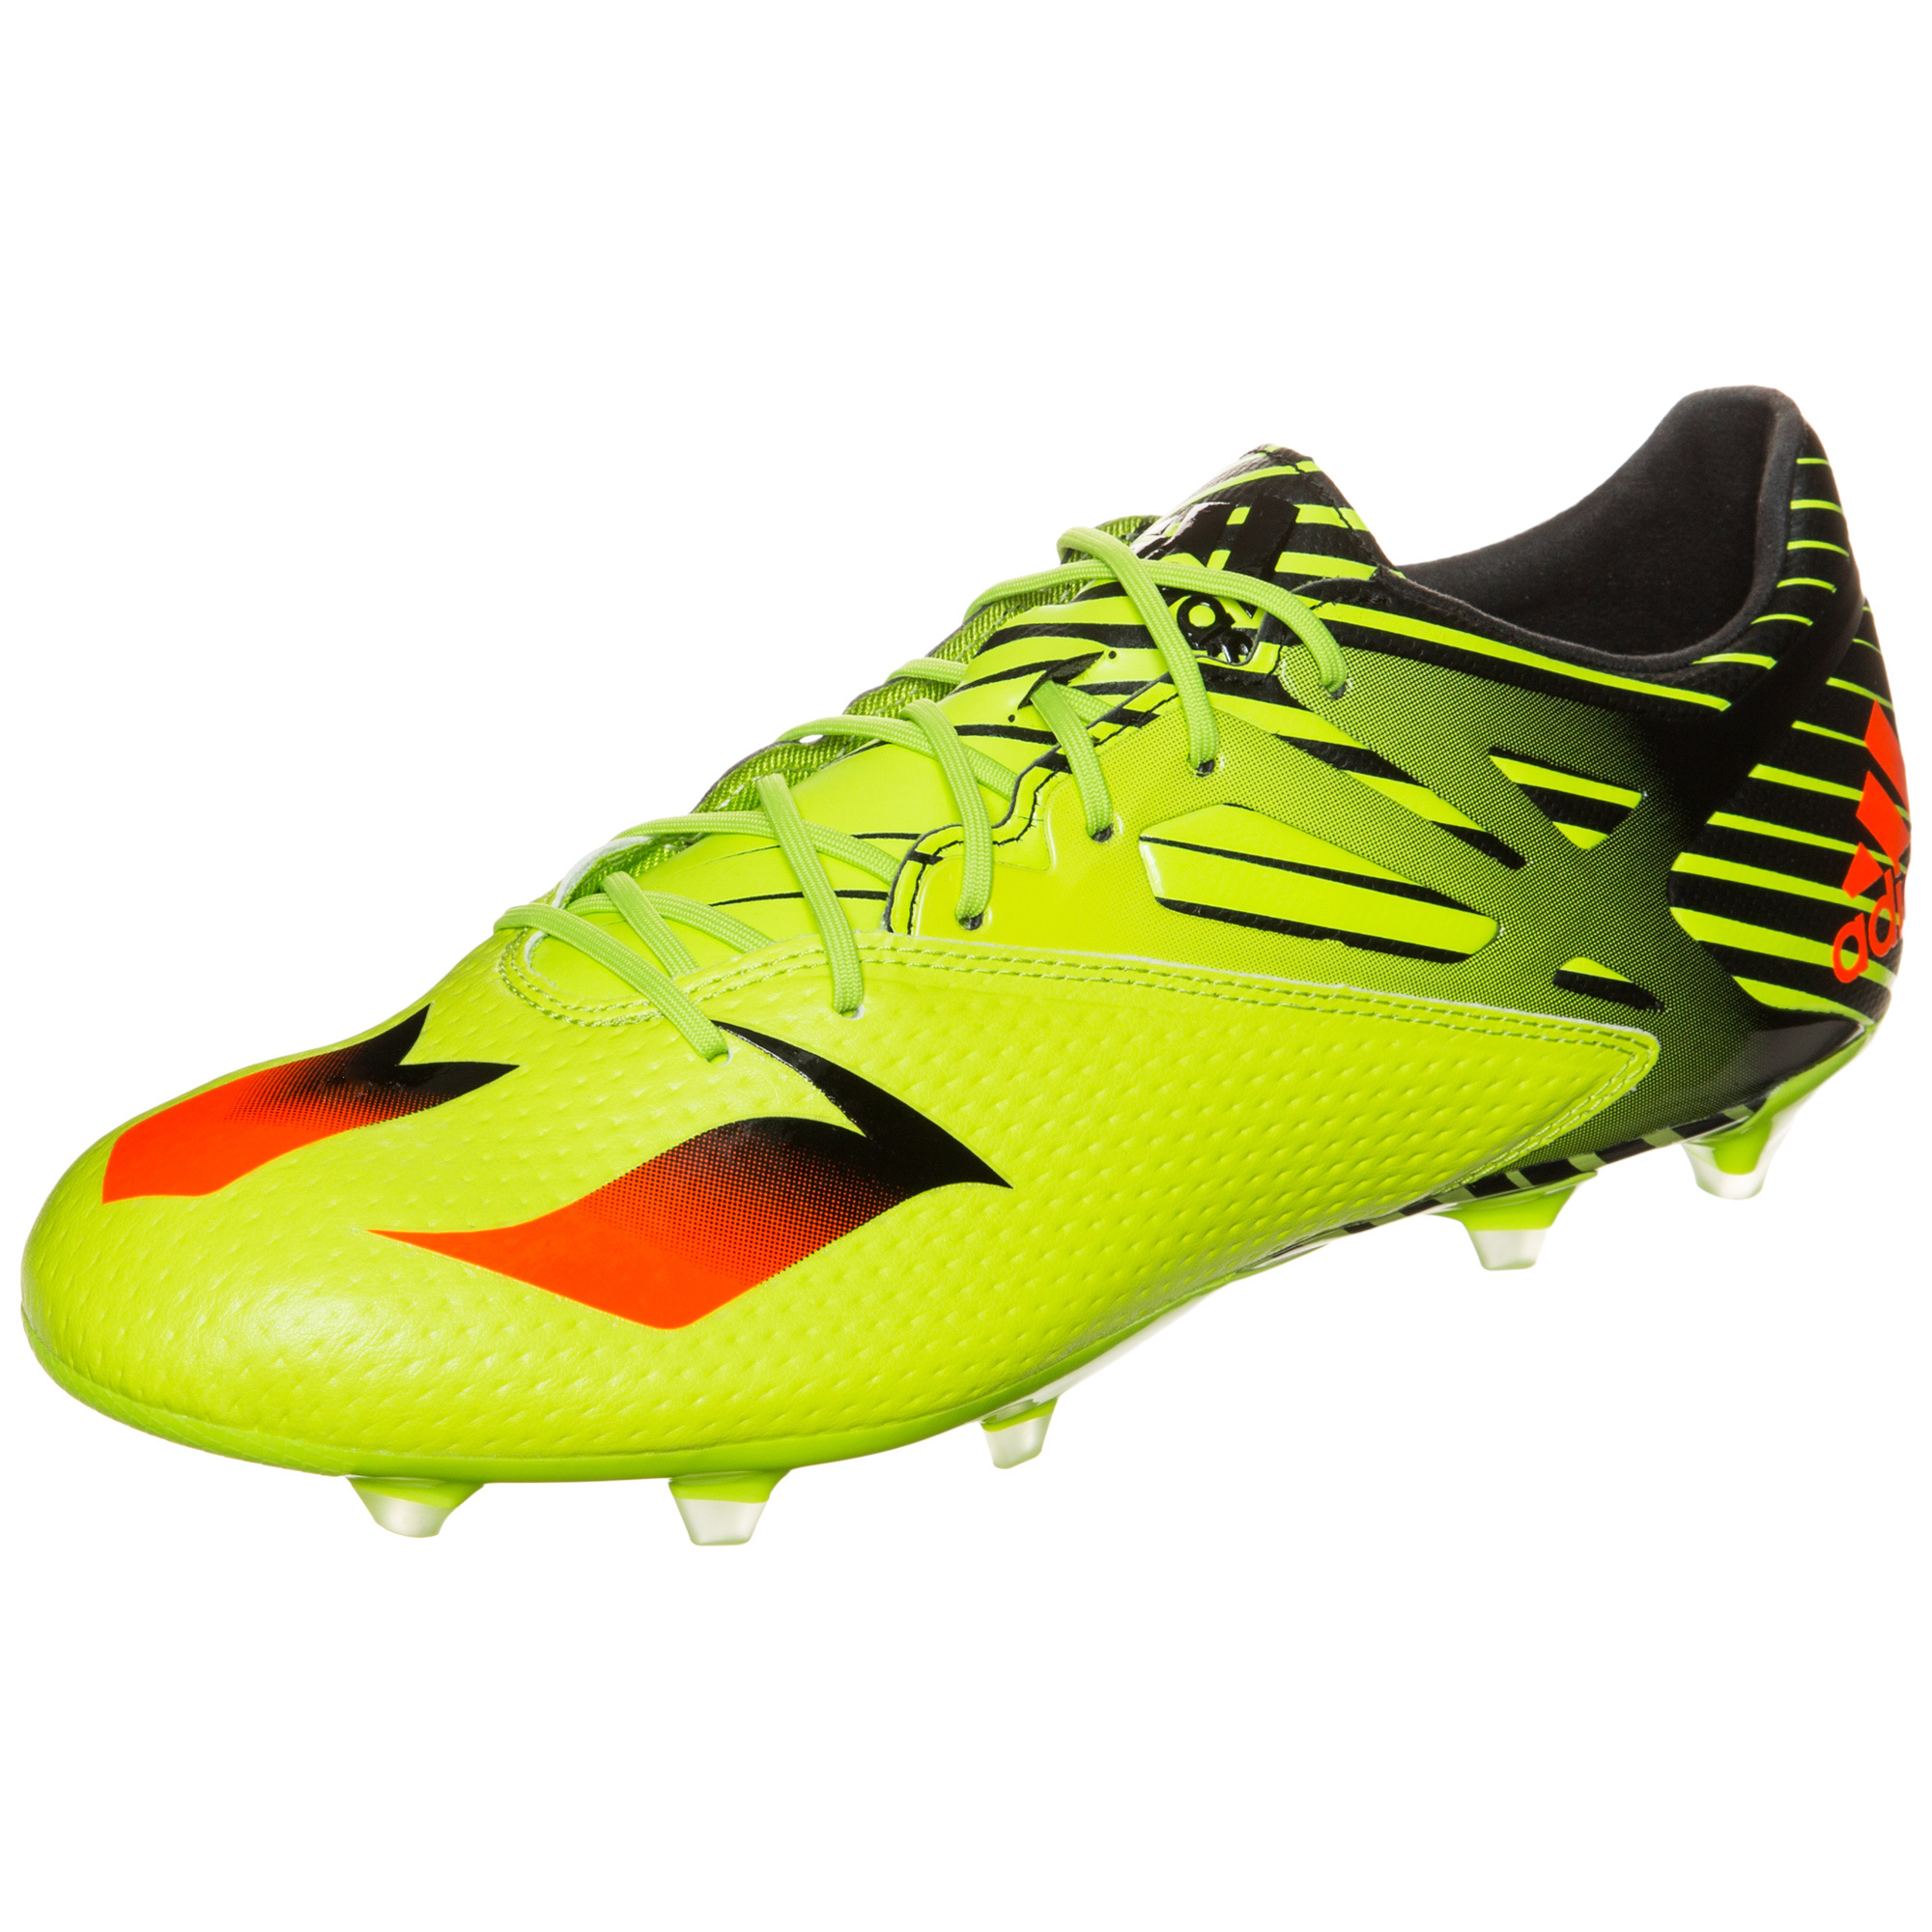 0f9b8efffc7 Adidas men s soccer cleats Messi 15.2 S74688  51 ...